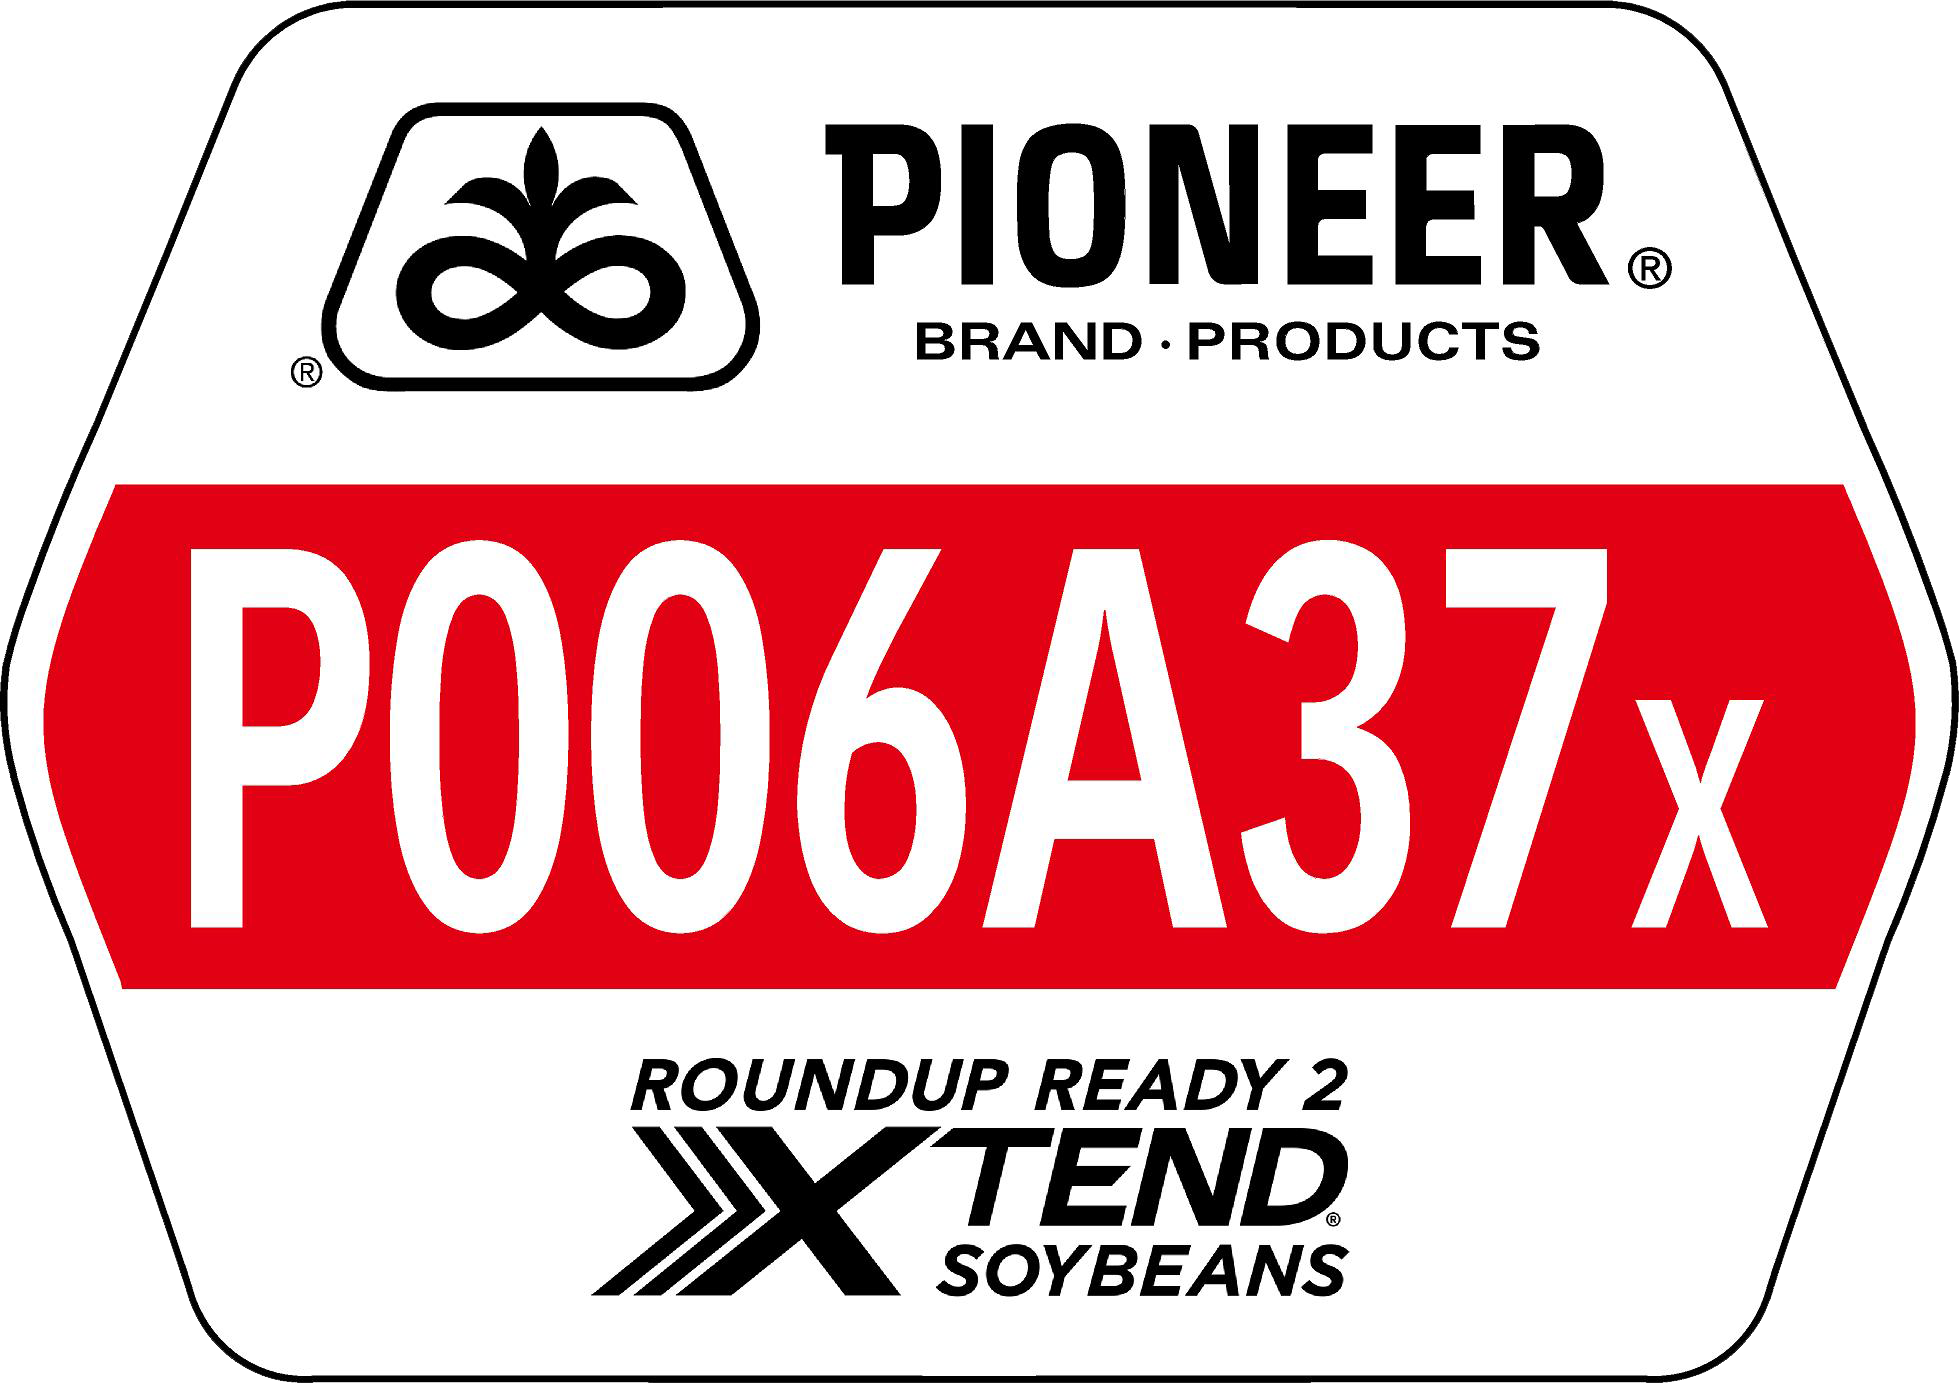 Field Sign > Soybeans > P006A37X